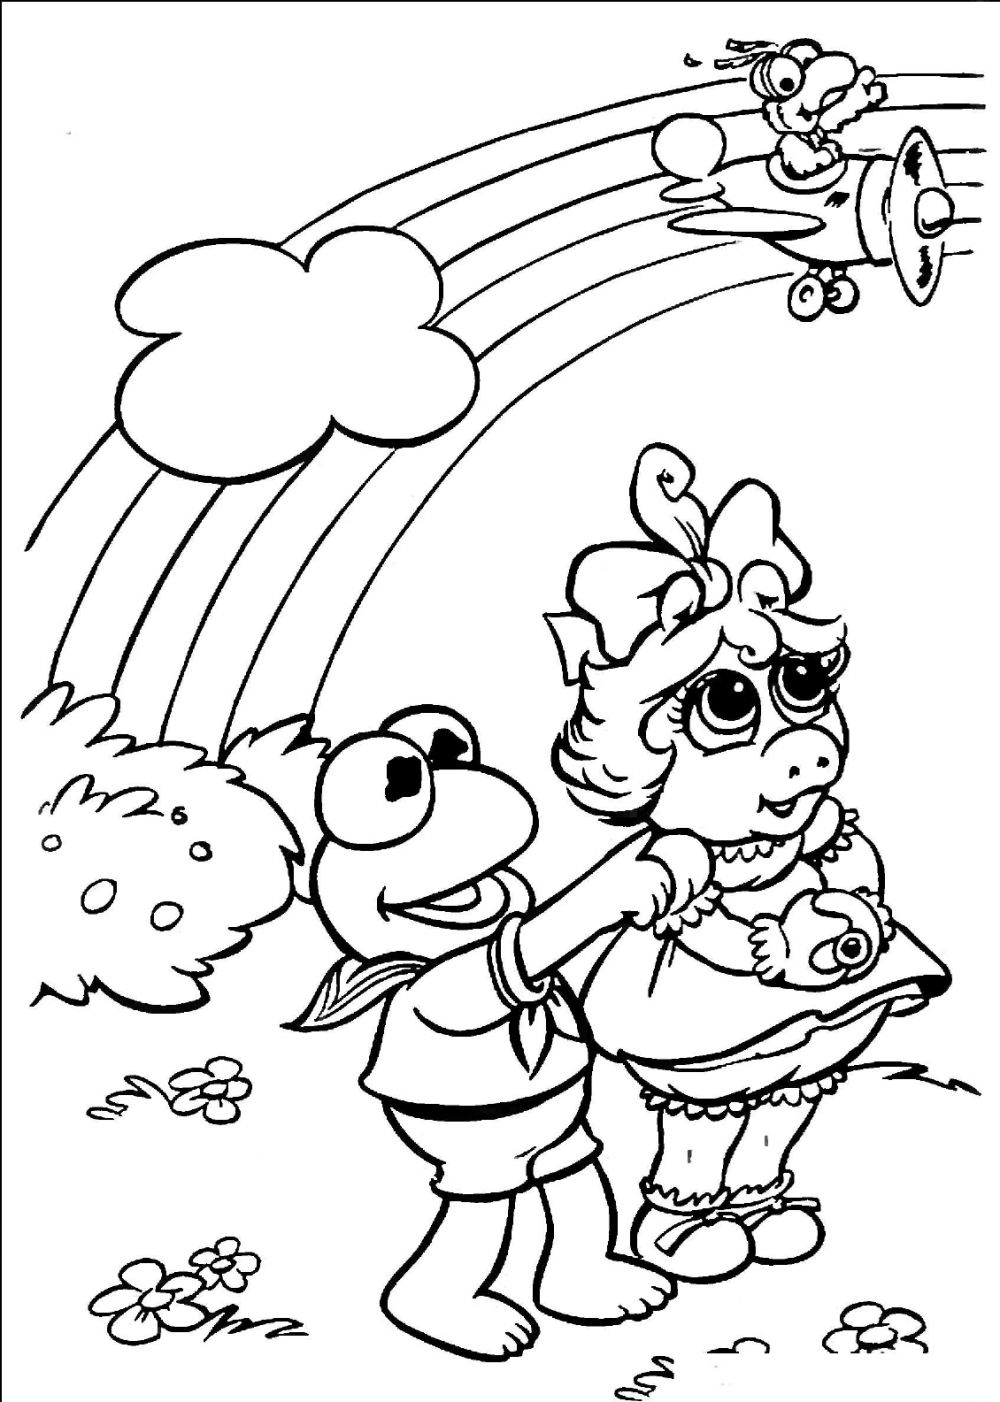 Free printable rainbow coloring pages for kids for Rainbow magic fairy coloring pages